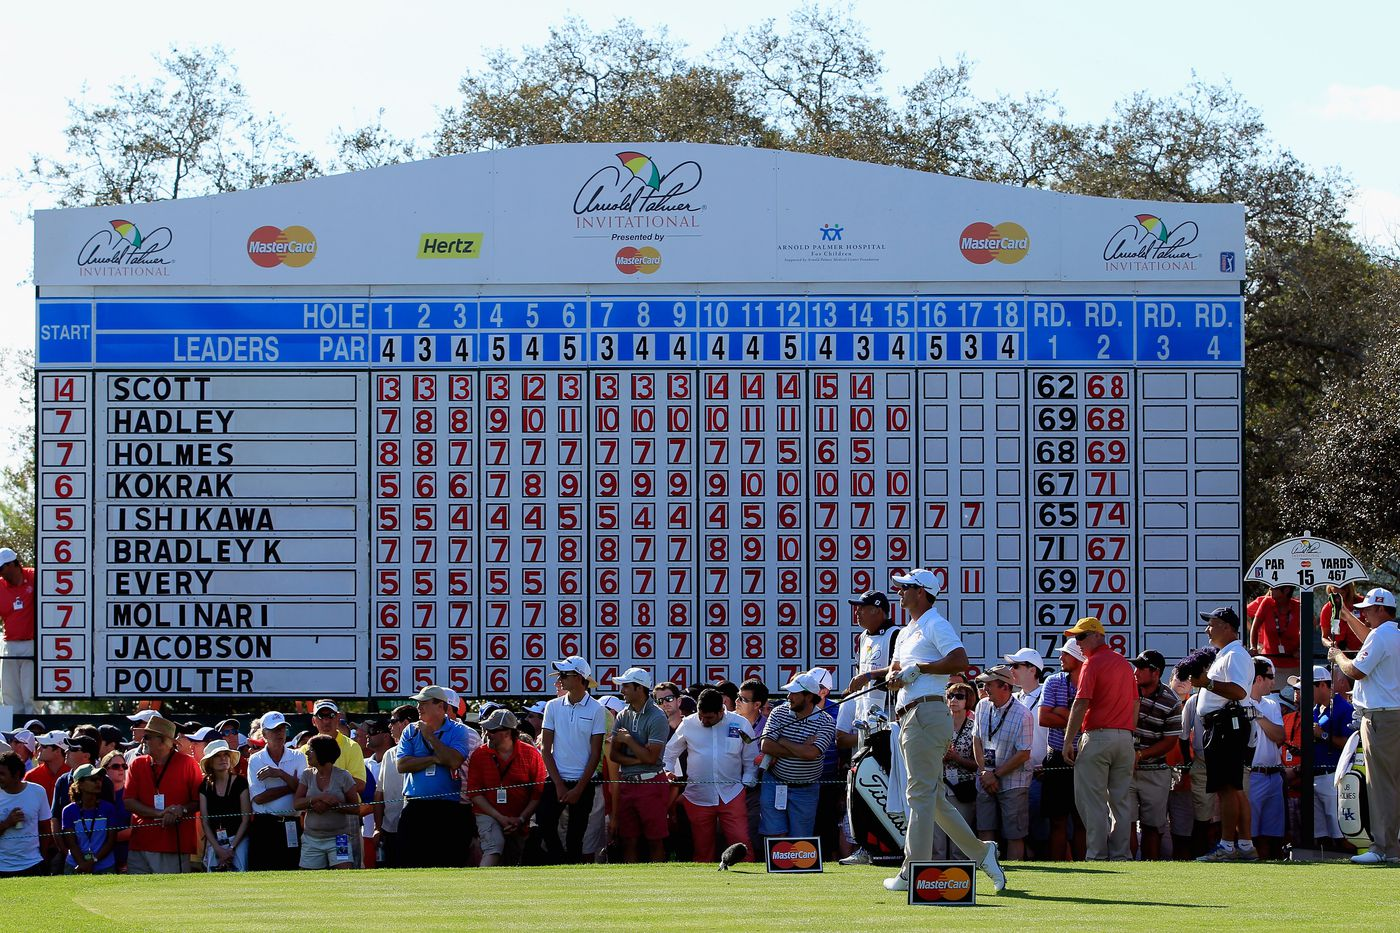 Arnold Palmer Invitational 2014 live stream: How to watch online, TV ...